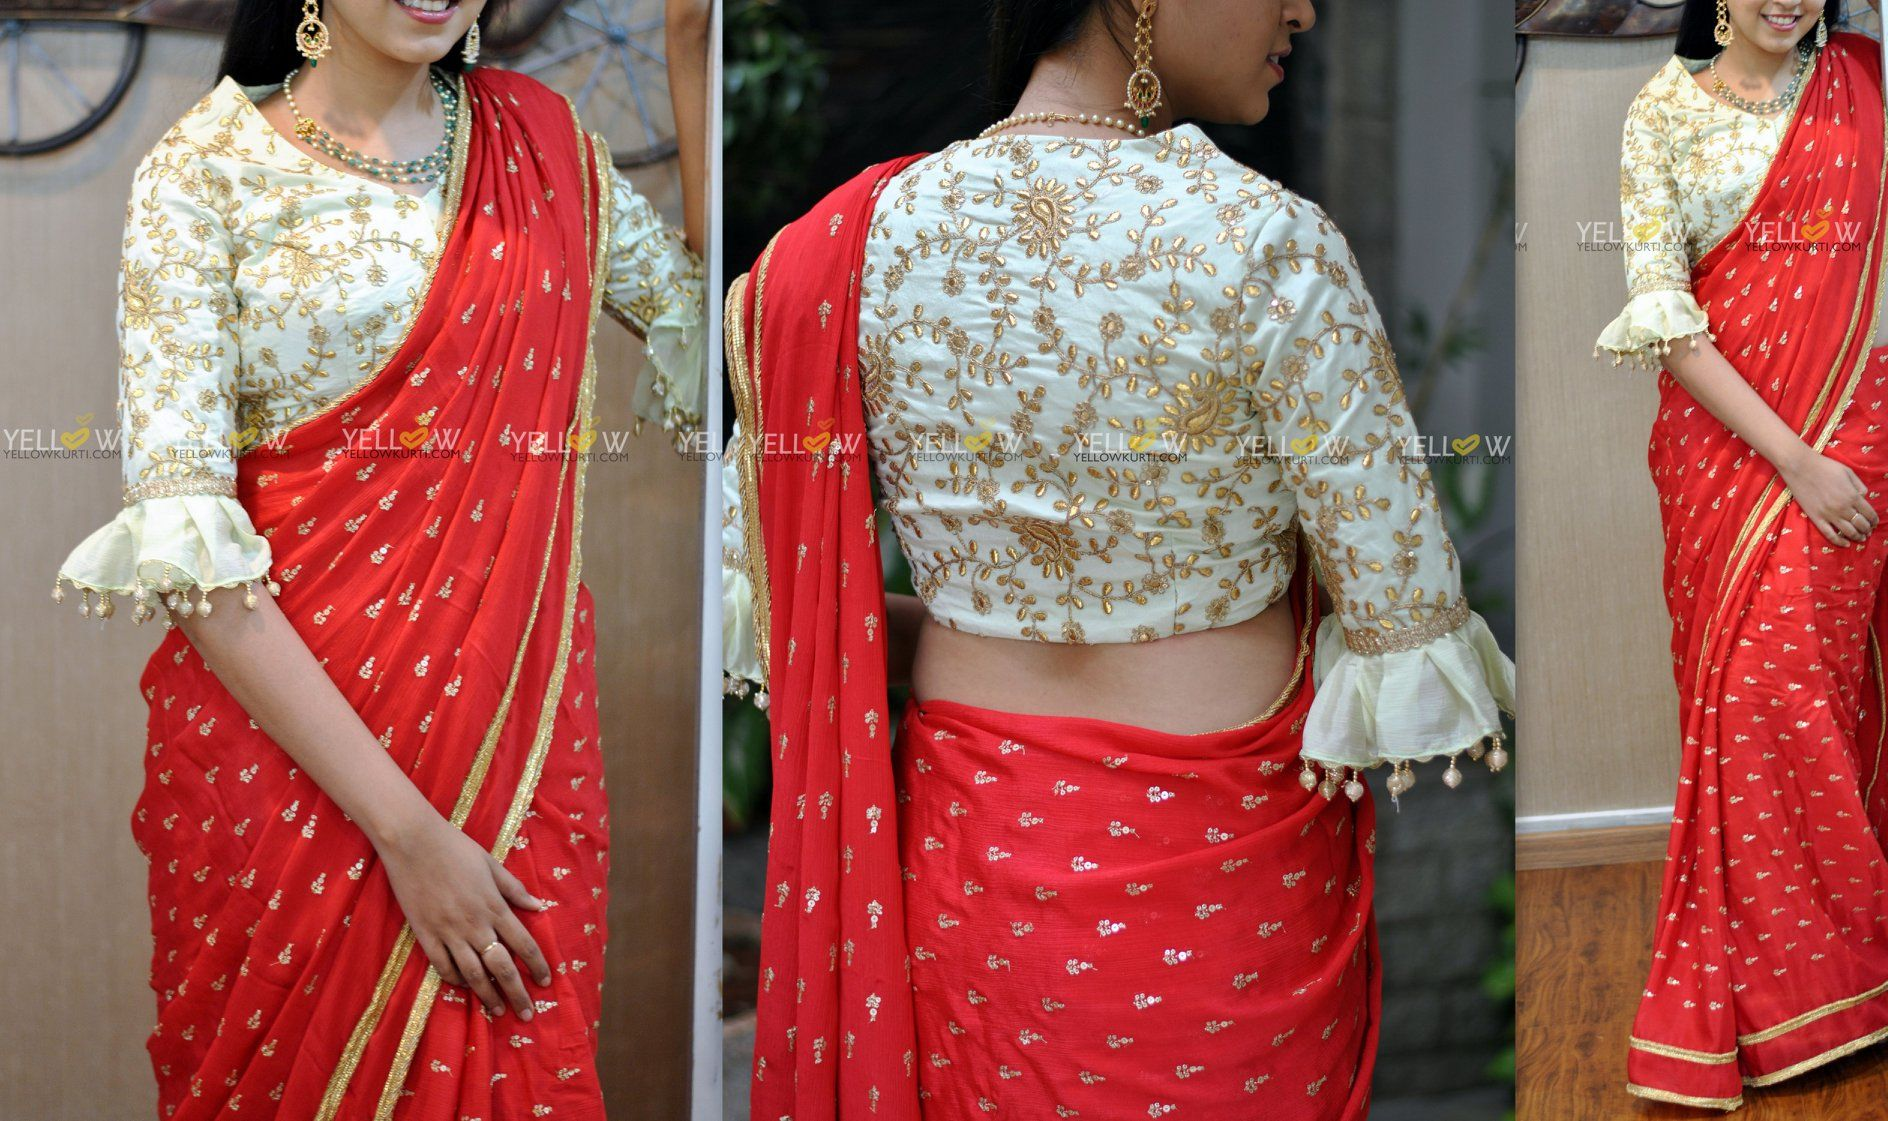 a7eef2c7da192 Bright Red sequin worked Chiffon saree with golden borders .Blouse - Mint  green embroidered blouse material as in the picture.Price - 5500 INR .